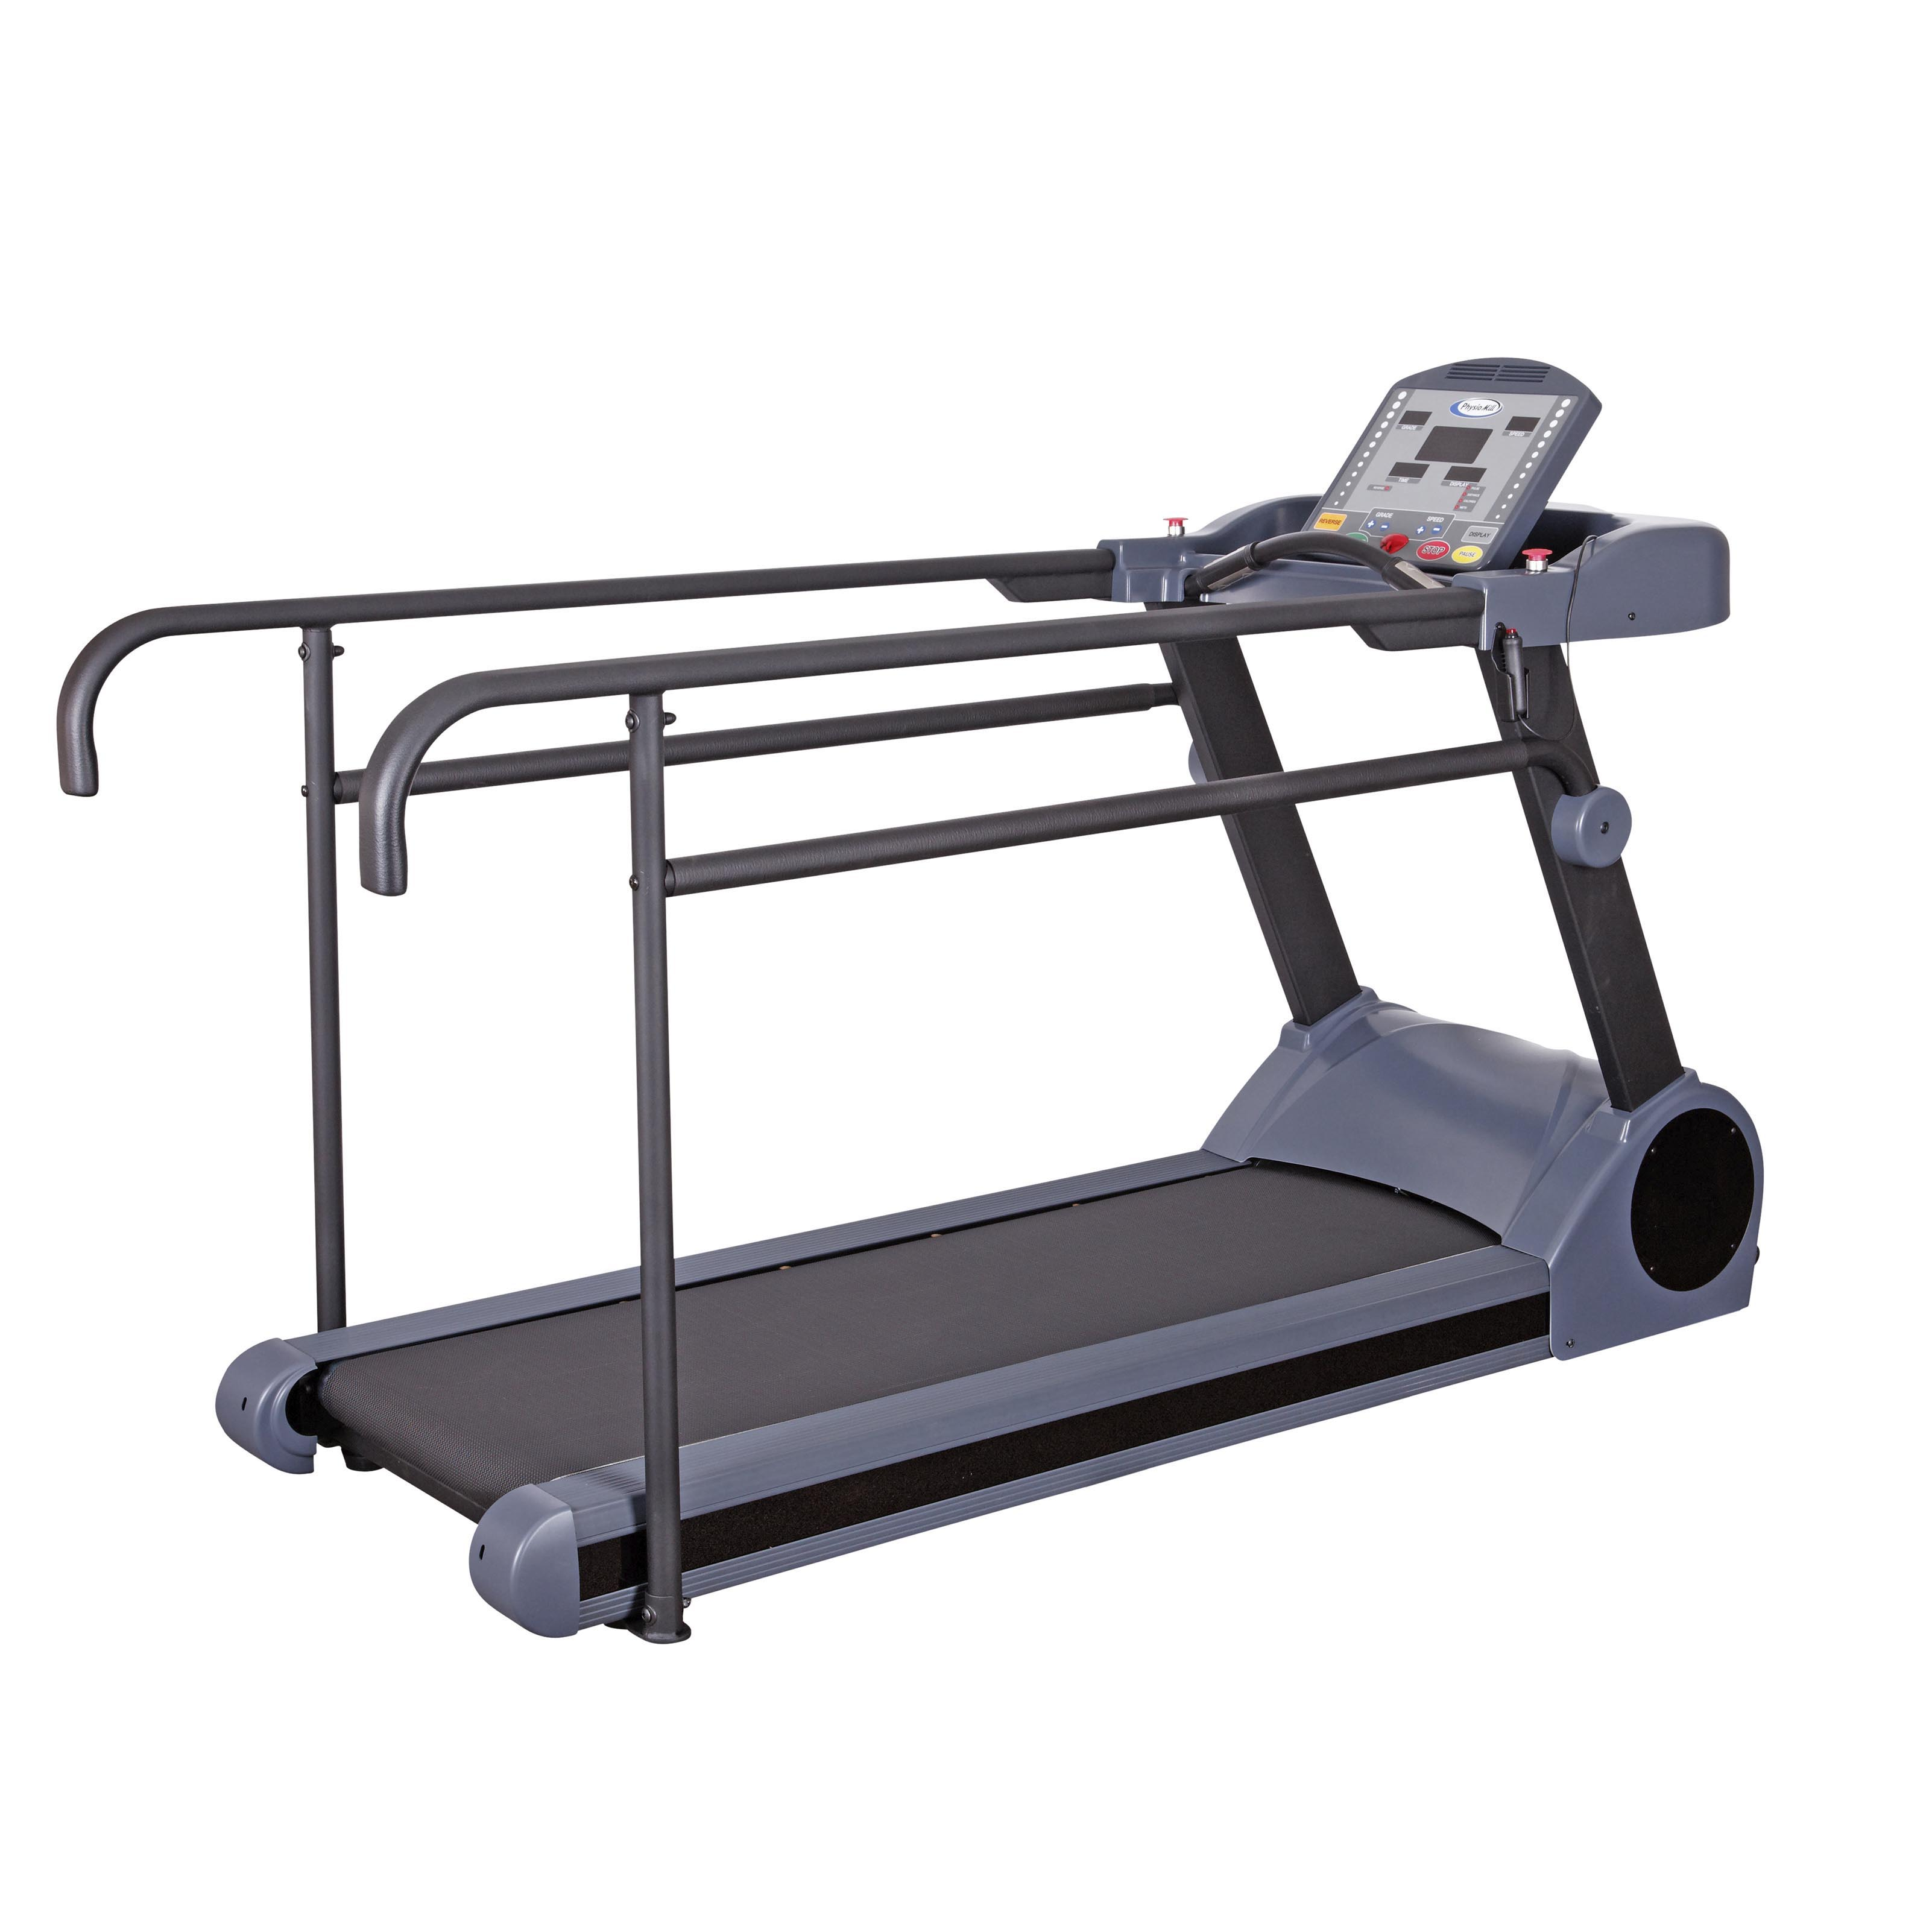 PhysioMill Rehabilitation Treadmill Arm